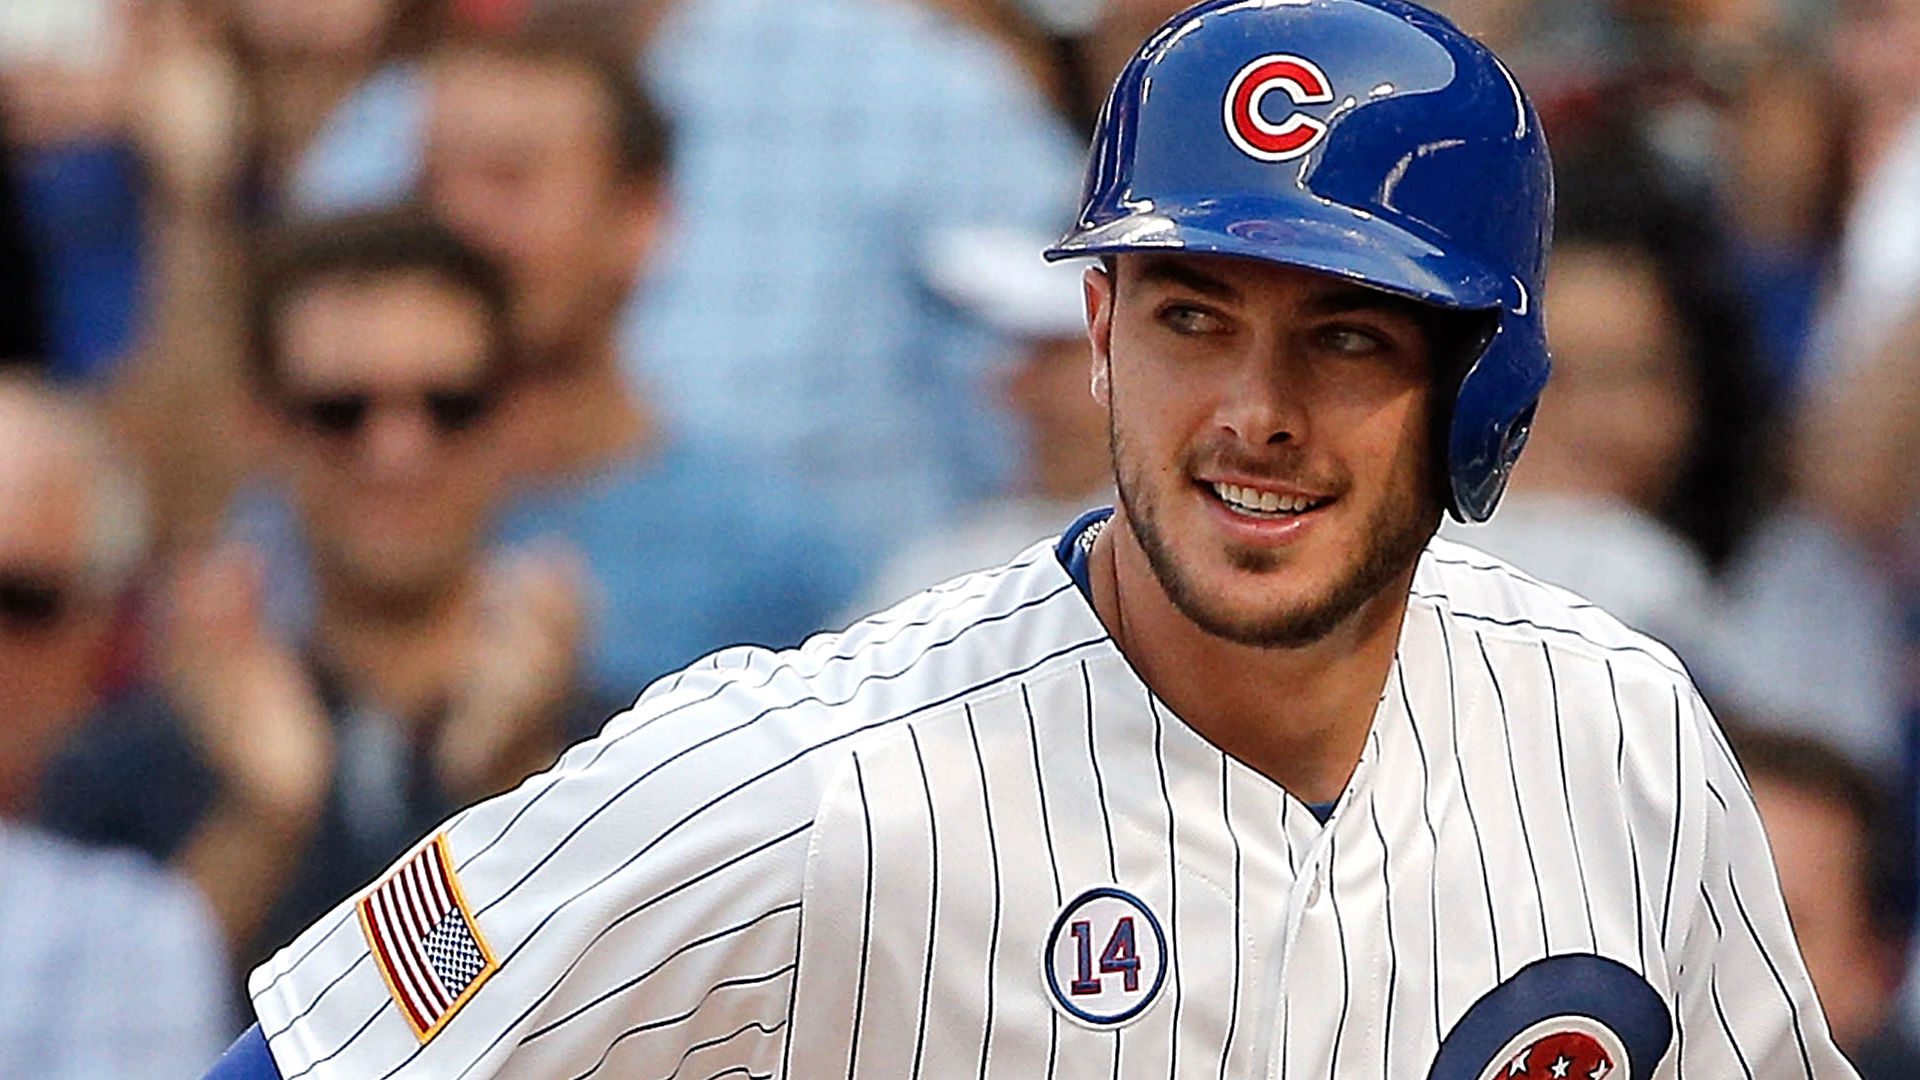 MLB Nightly 9: Kris Bryant blasts two homers in Cubs' win